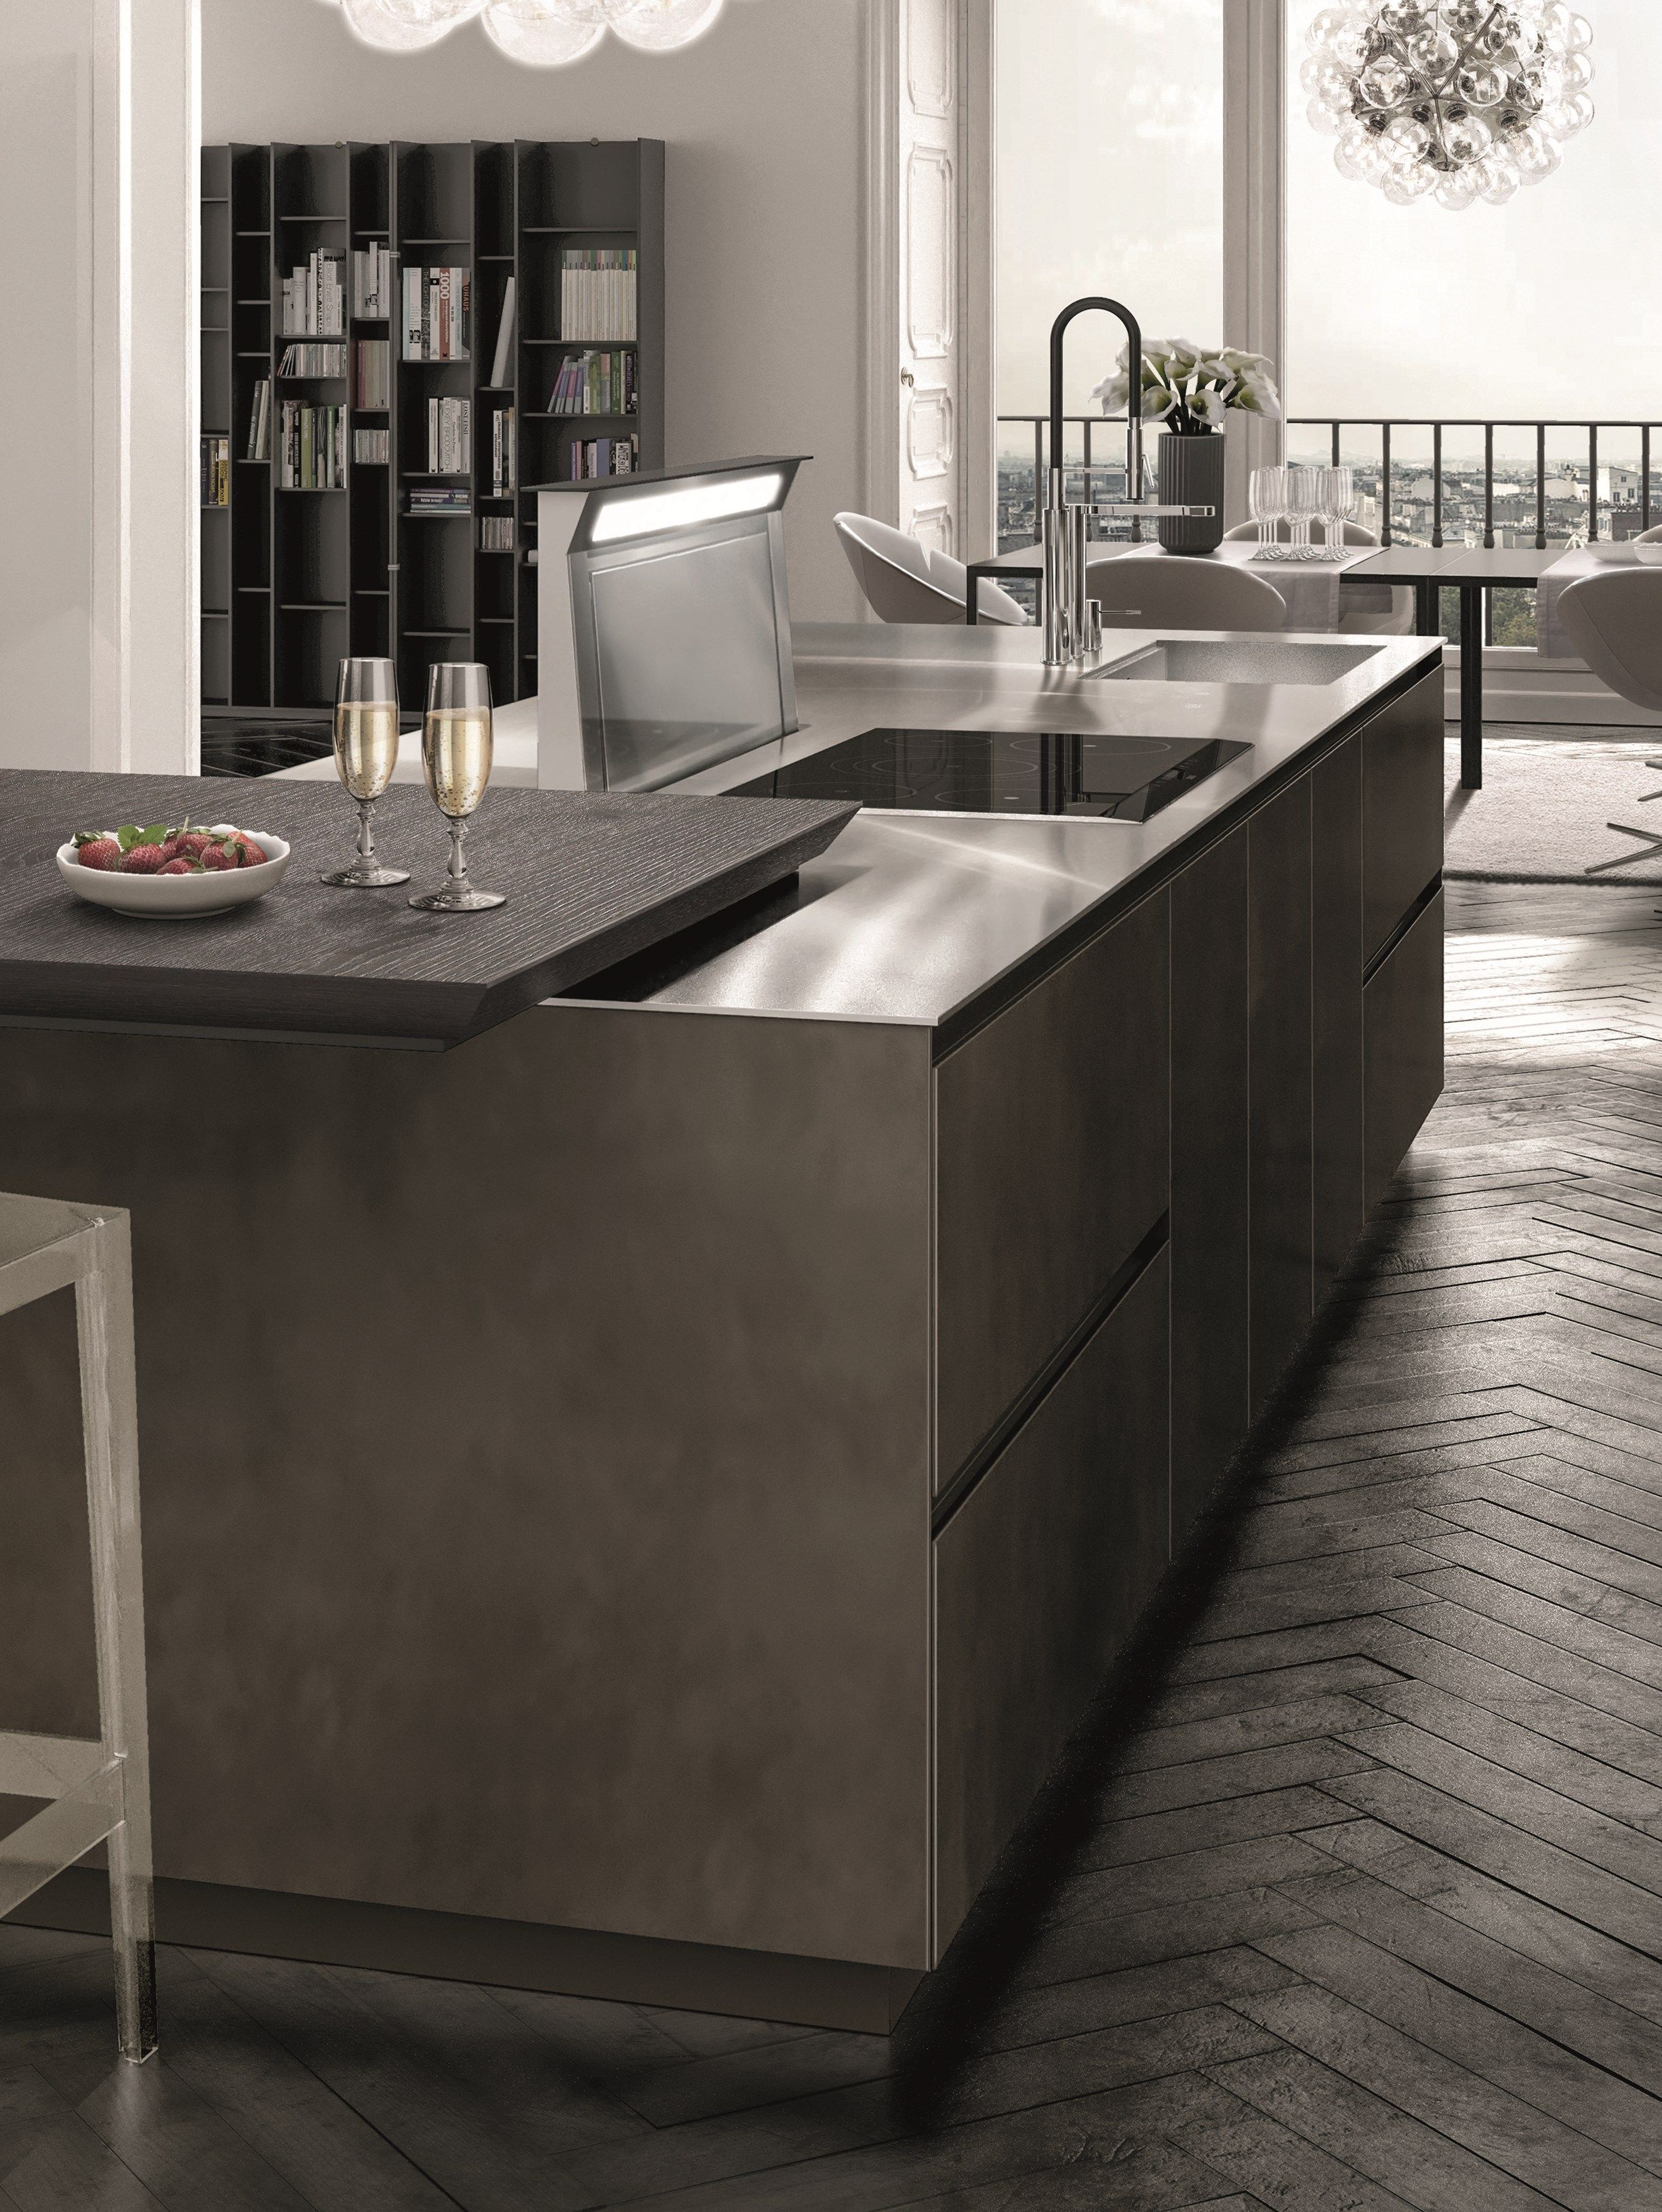 fusion antis euromobil. Lacquered Fitted Kitchen ANTIS FUSION By Euromobil Design Roberto Gobbo Fusion Antis S